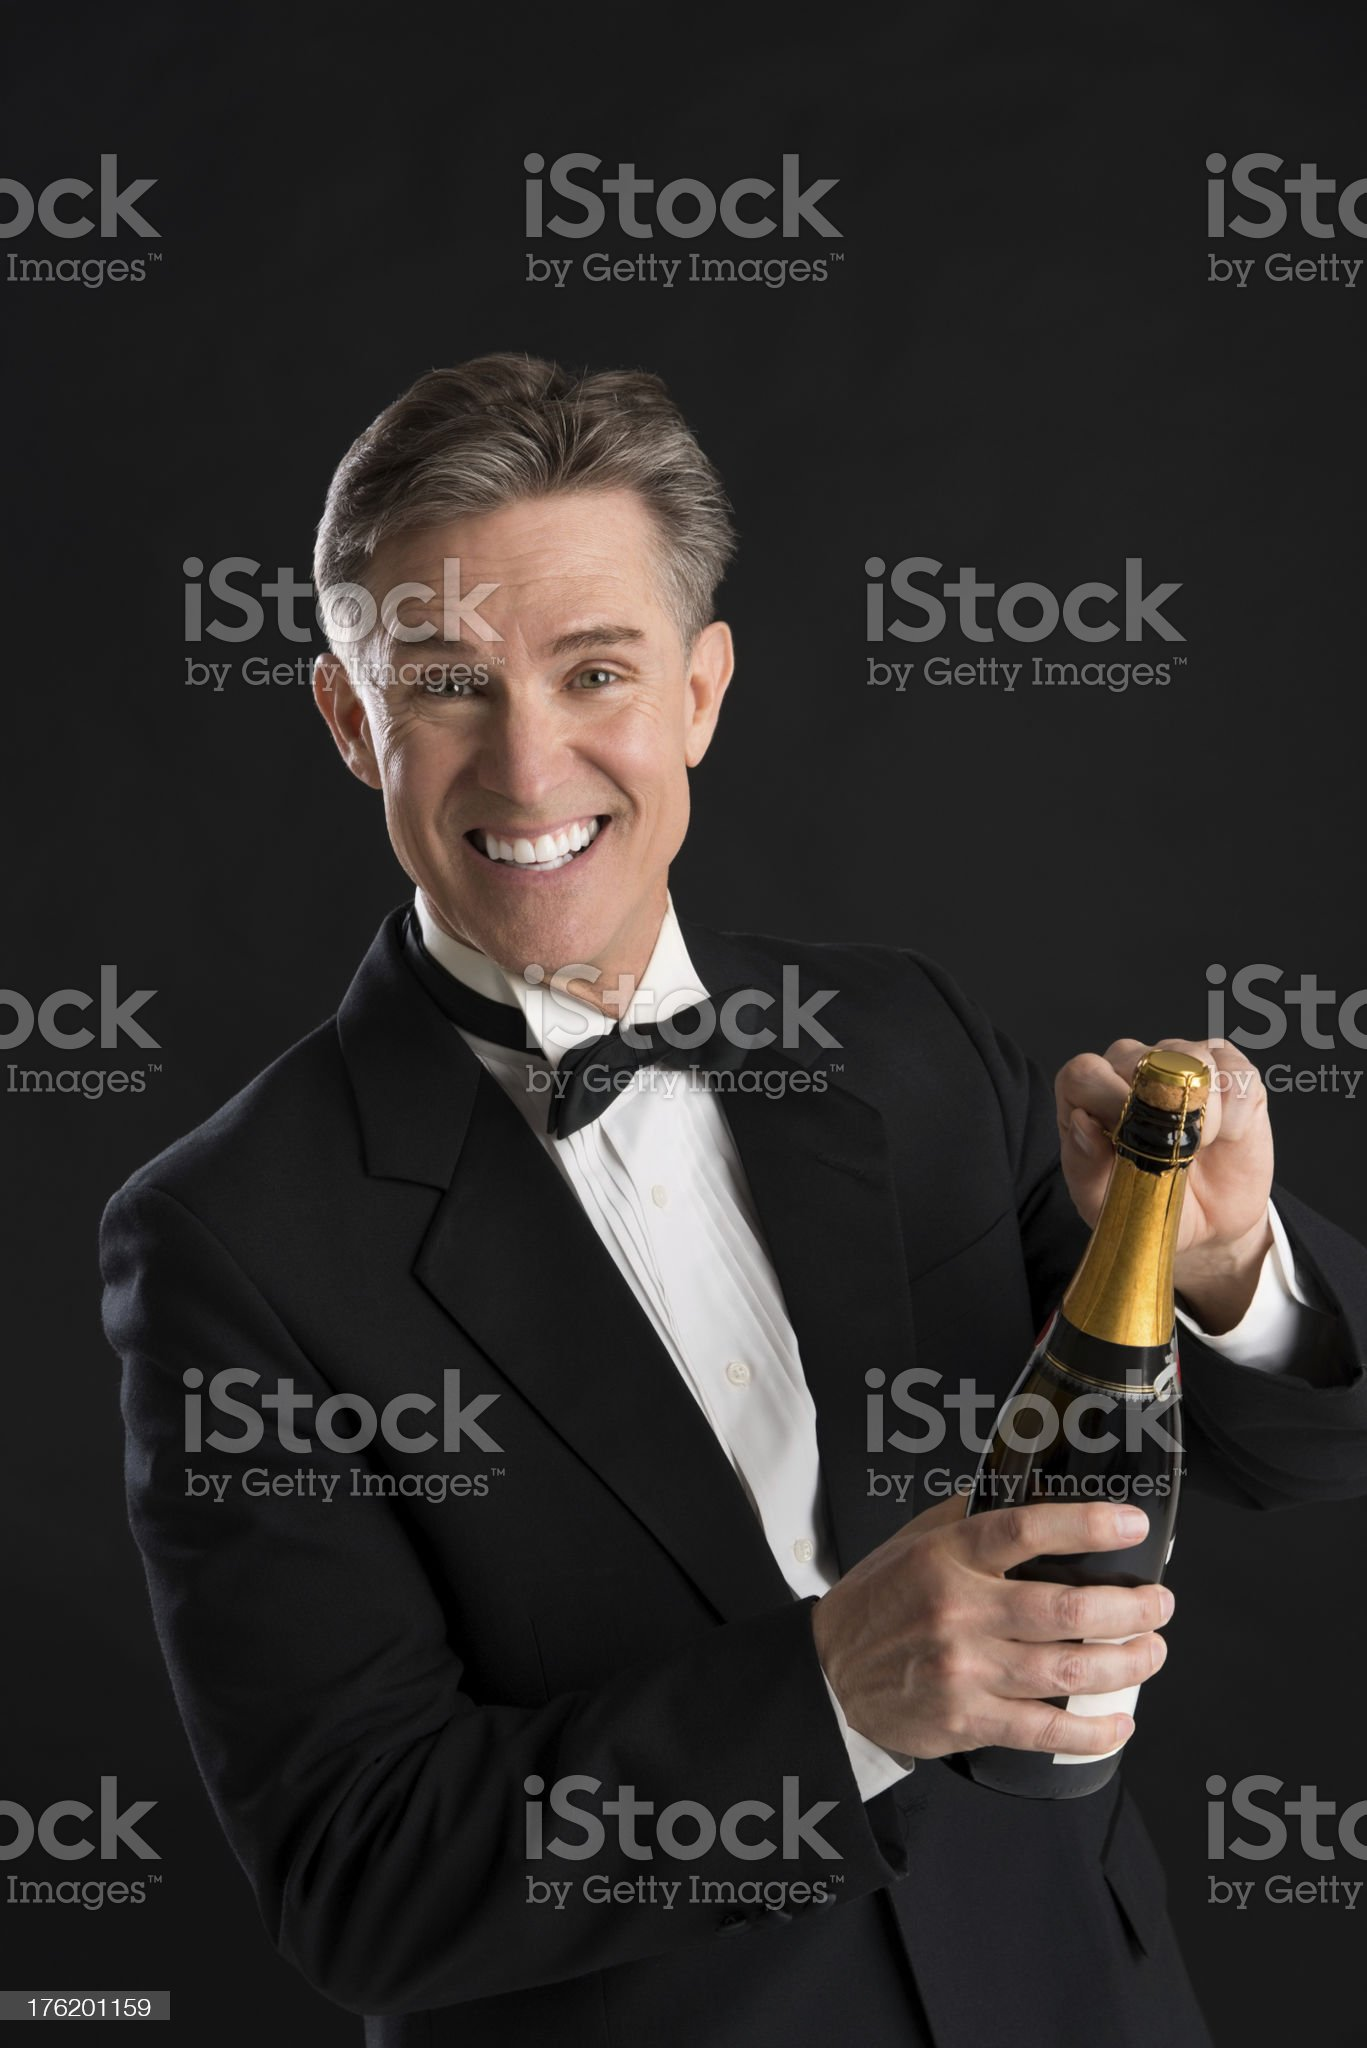 Portrait Of Cheerful Man In Tuxedo Opening Champagne Bottle royalty-free stock photo